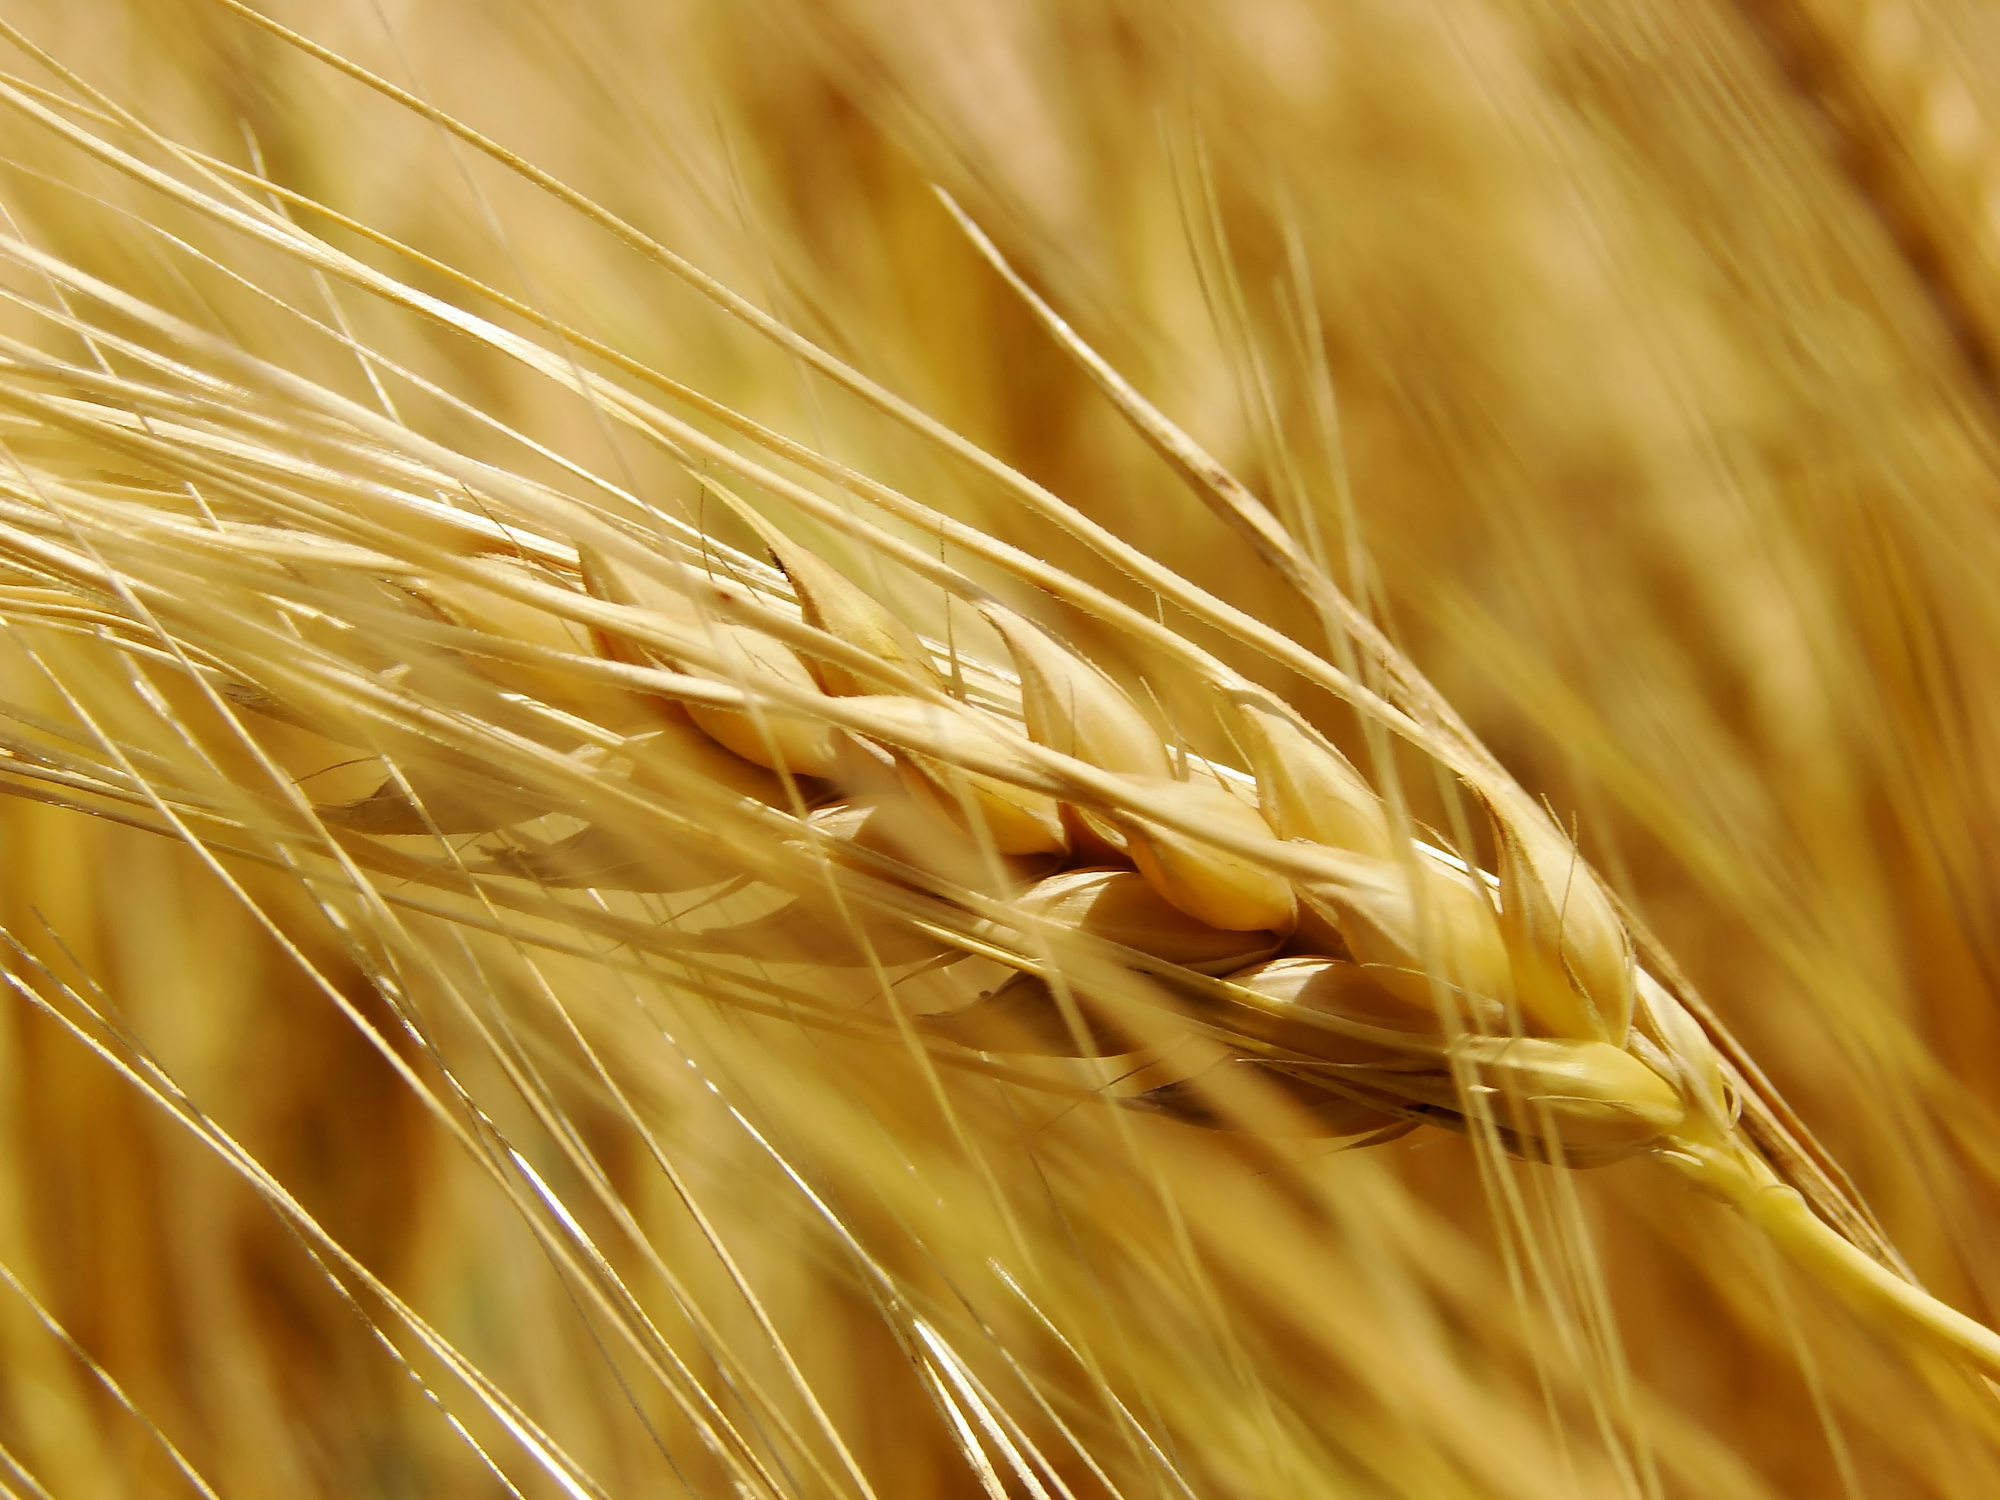 40 Year Cycle wheat and crops crises